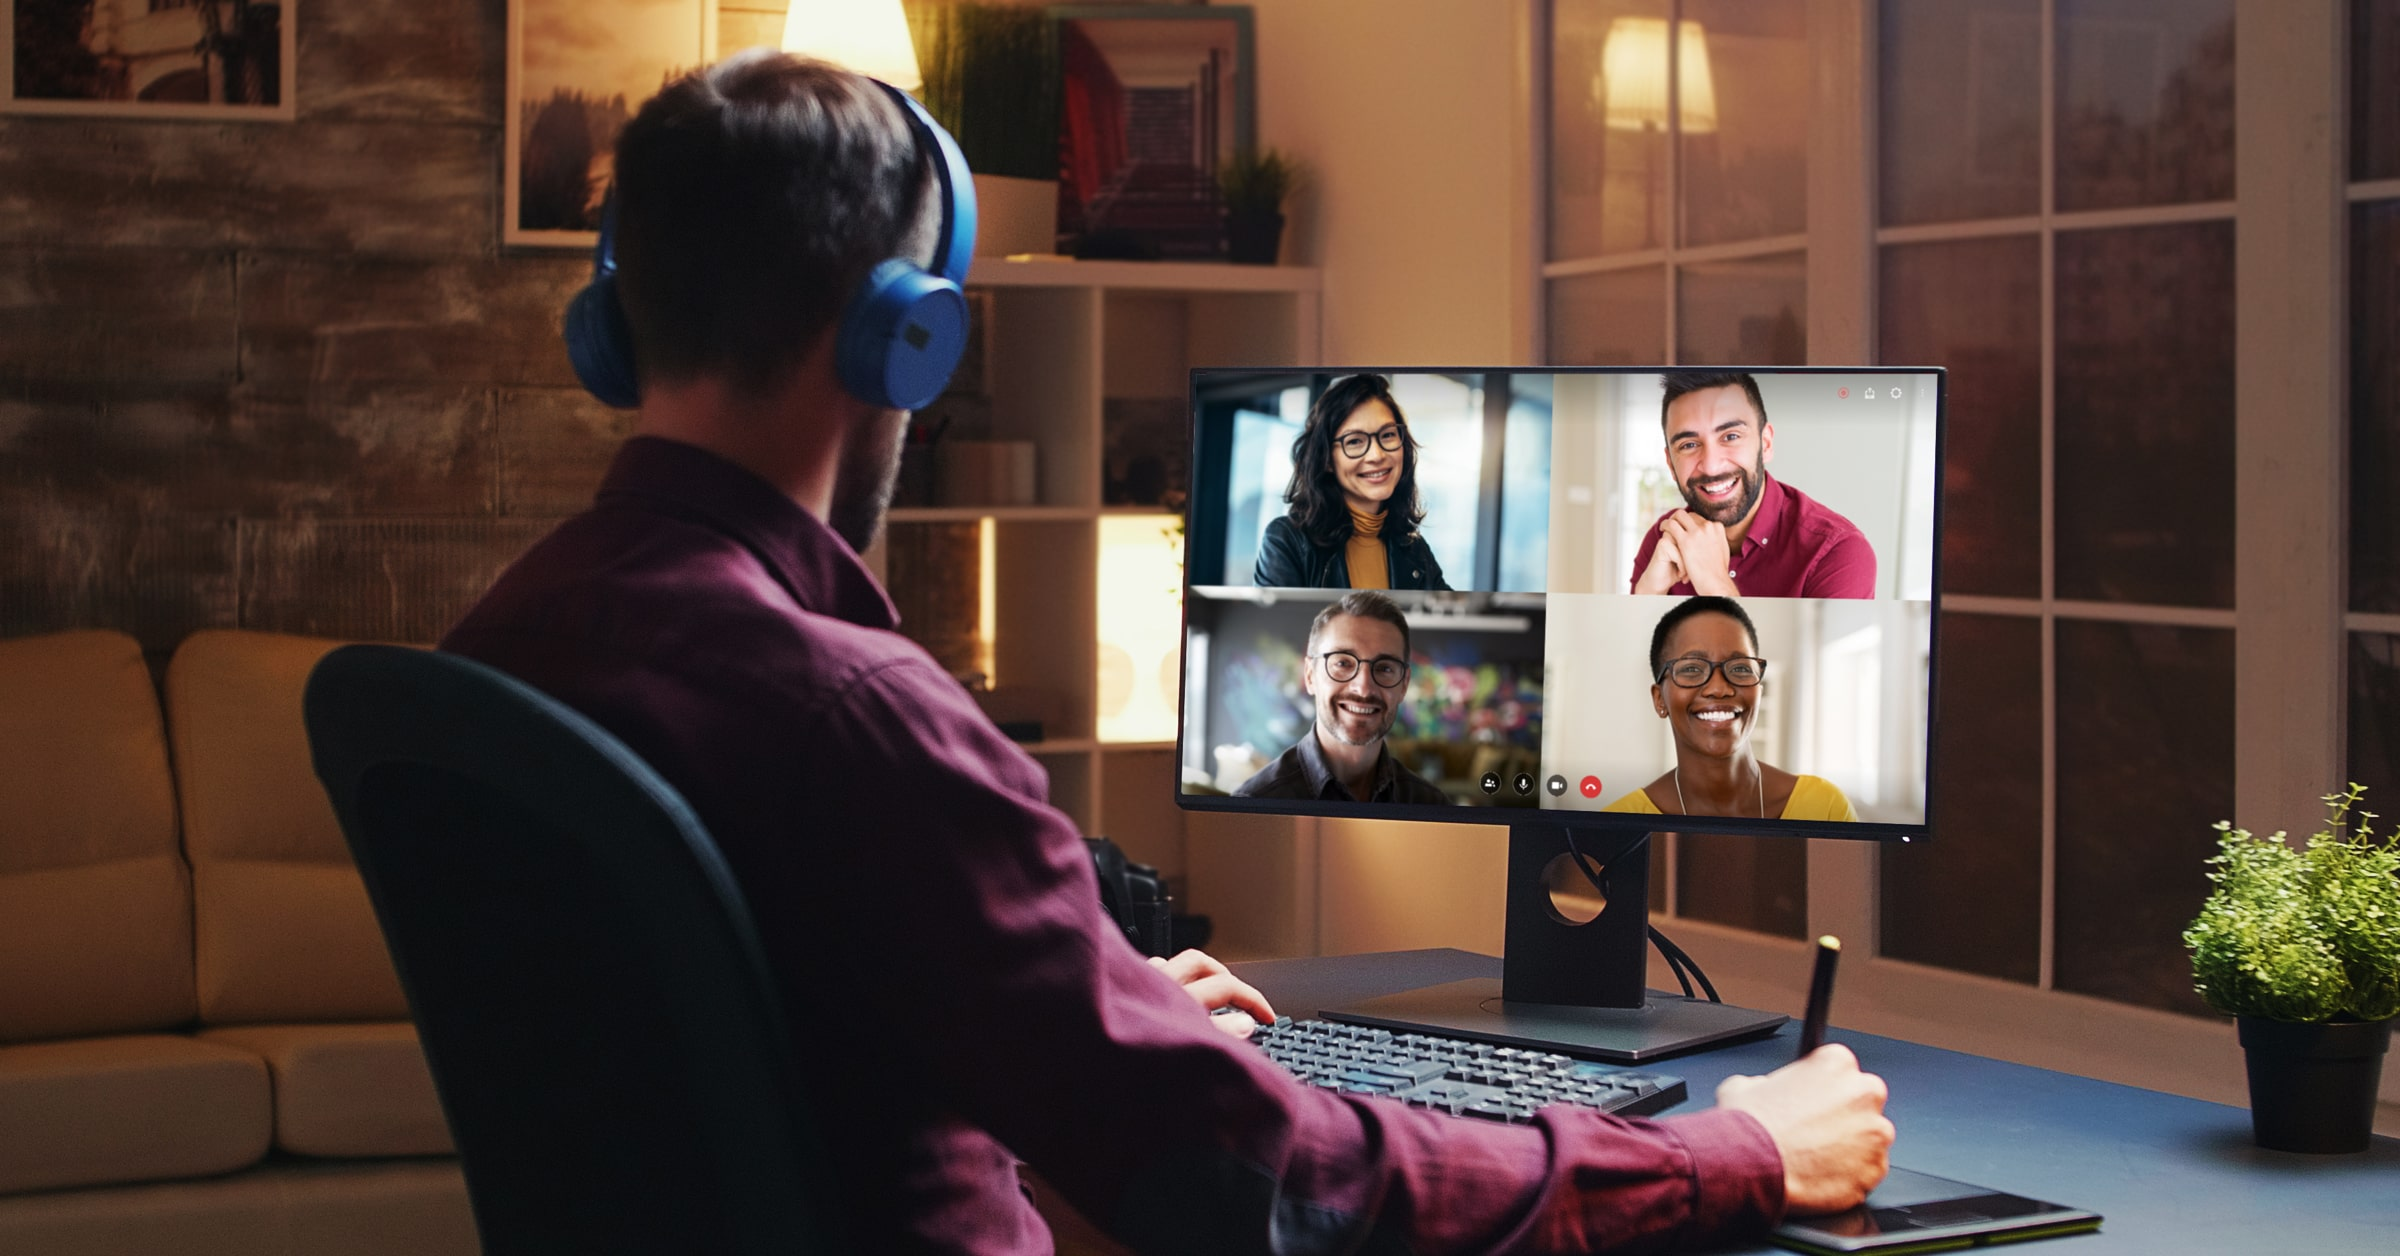 Secure Video Conferencing & Online Meetings [+Free Account]